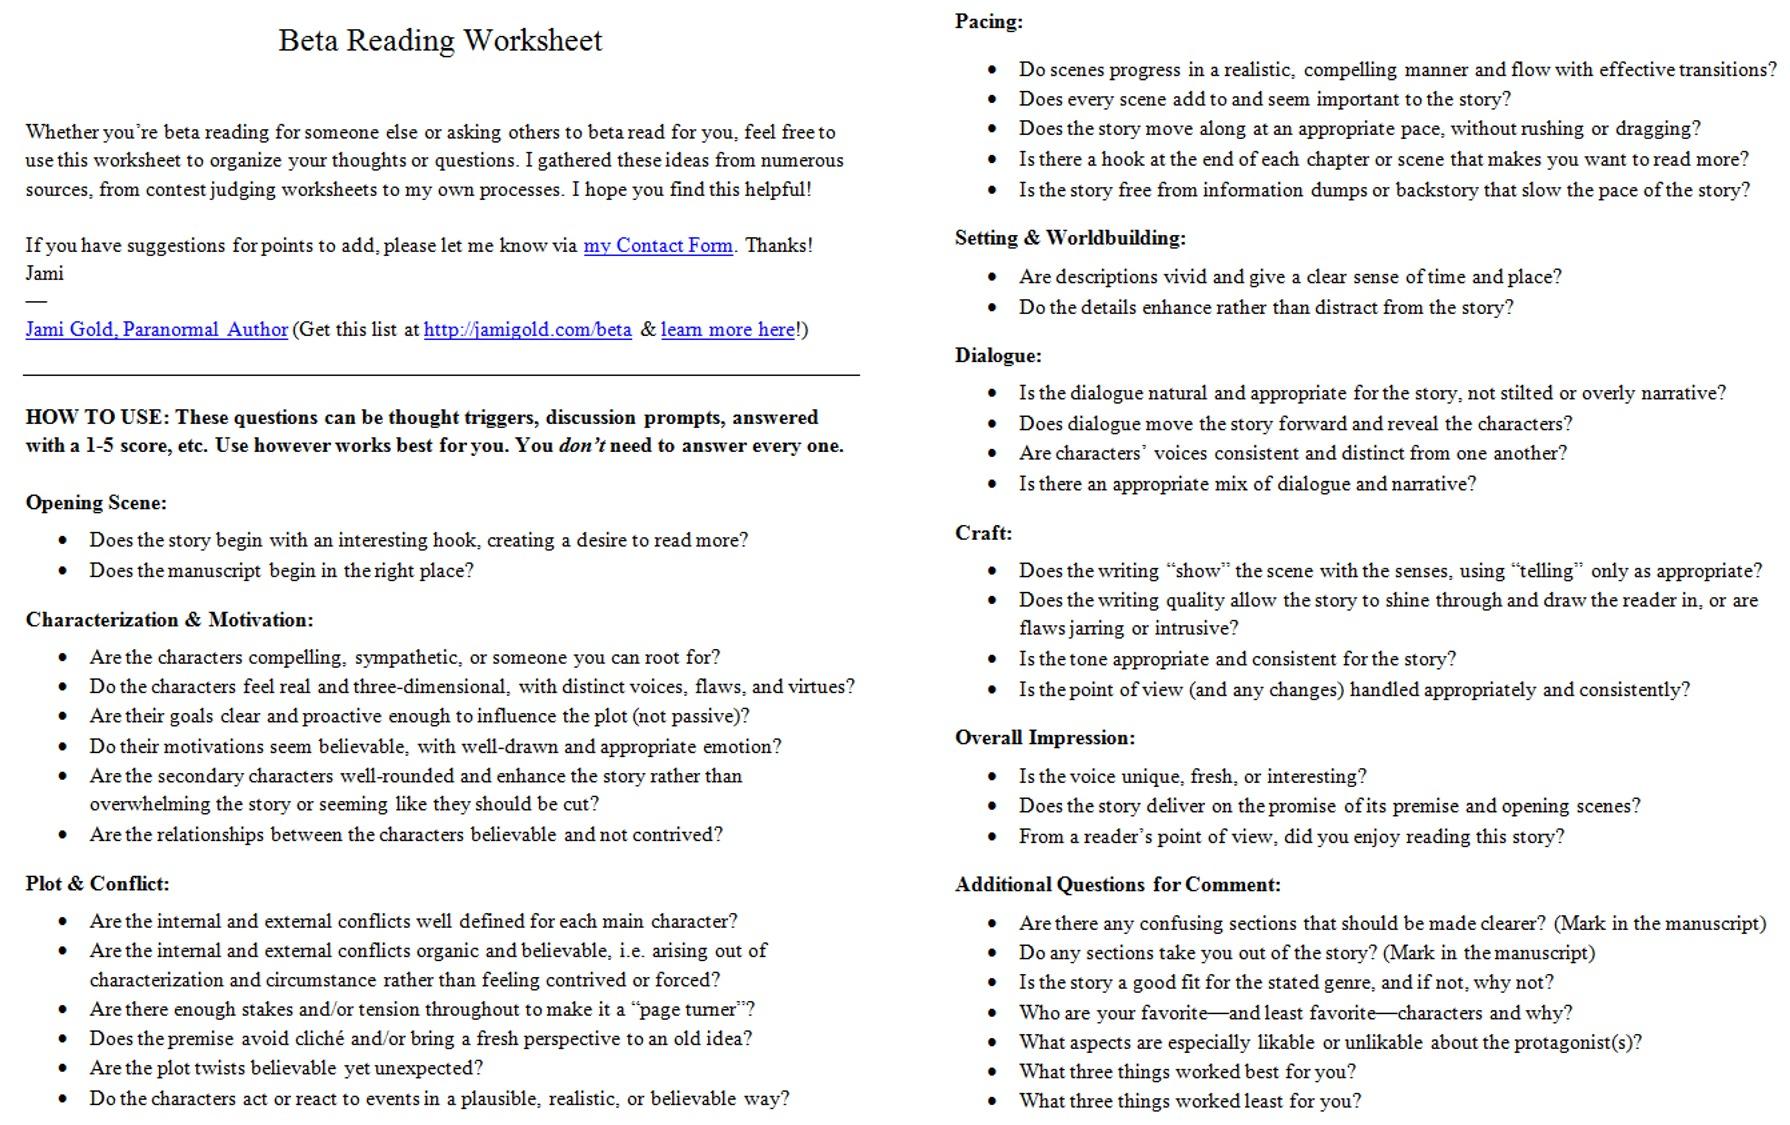 Weirdmailus  Prepossessing Worksheets For Writers  Jami Gold Paranormal Author With Entrancing Screen Shot Of The Twopage Beta Reading Worksheet With Enchanting Fourth Standard Maths Worksheets Also Phonic Sounds Worksheets In Addition Chance And Data Worksheets And Algebraic Expressions Practice Worksheets As Well As Homophones Worksheet Ks Additionally Free English Printable Worksheets From Jamigoldcom With Weirdmailus  Entrancing Worksheets For Writers  Jami Gold Paranormal Author With Enchanting Screen Shot Of The Twopage Beta Reading Worksheet And Prepossessing Fourth Standard Maths Worksheets Also Phonic Sounds Worksheets In Addition Chance And Data Worksheets From Jamigoldcom